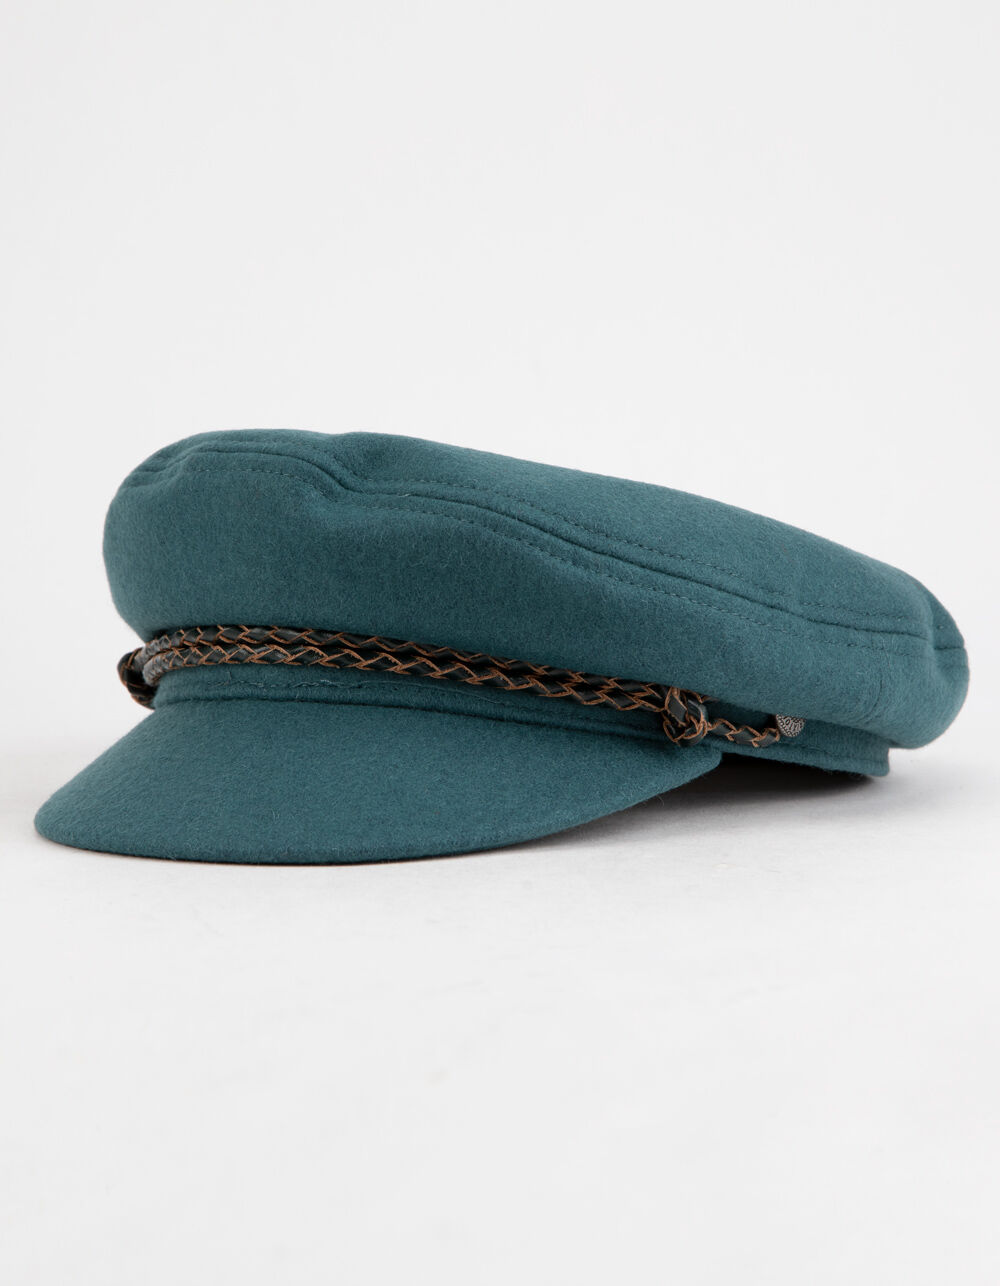 Image of BRIXTON ASHLAND MINERAL BLUE FIDDLER CAP